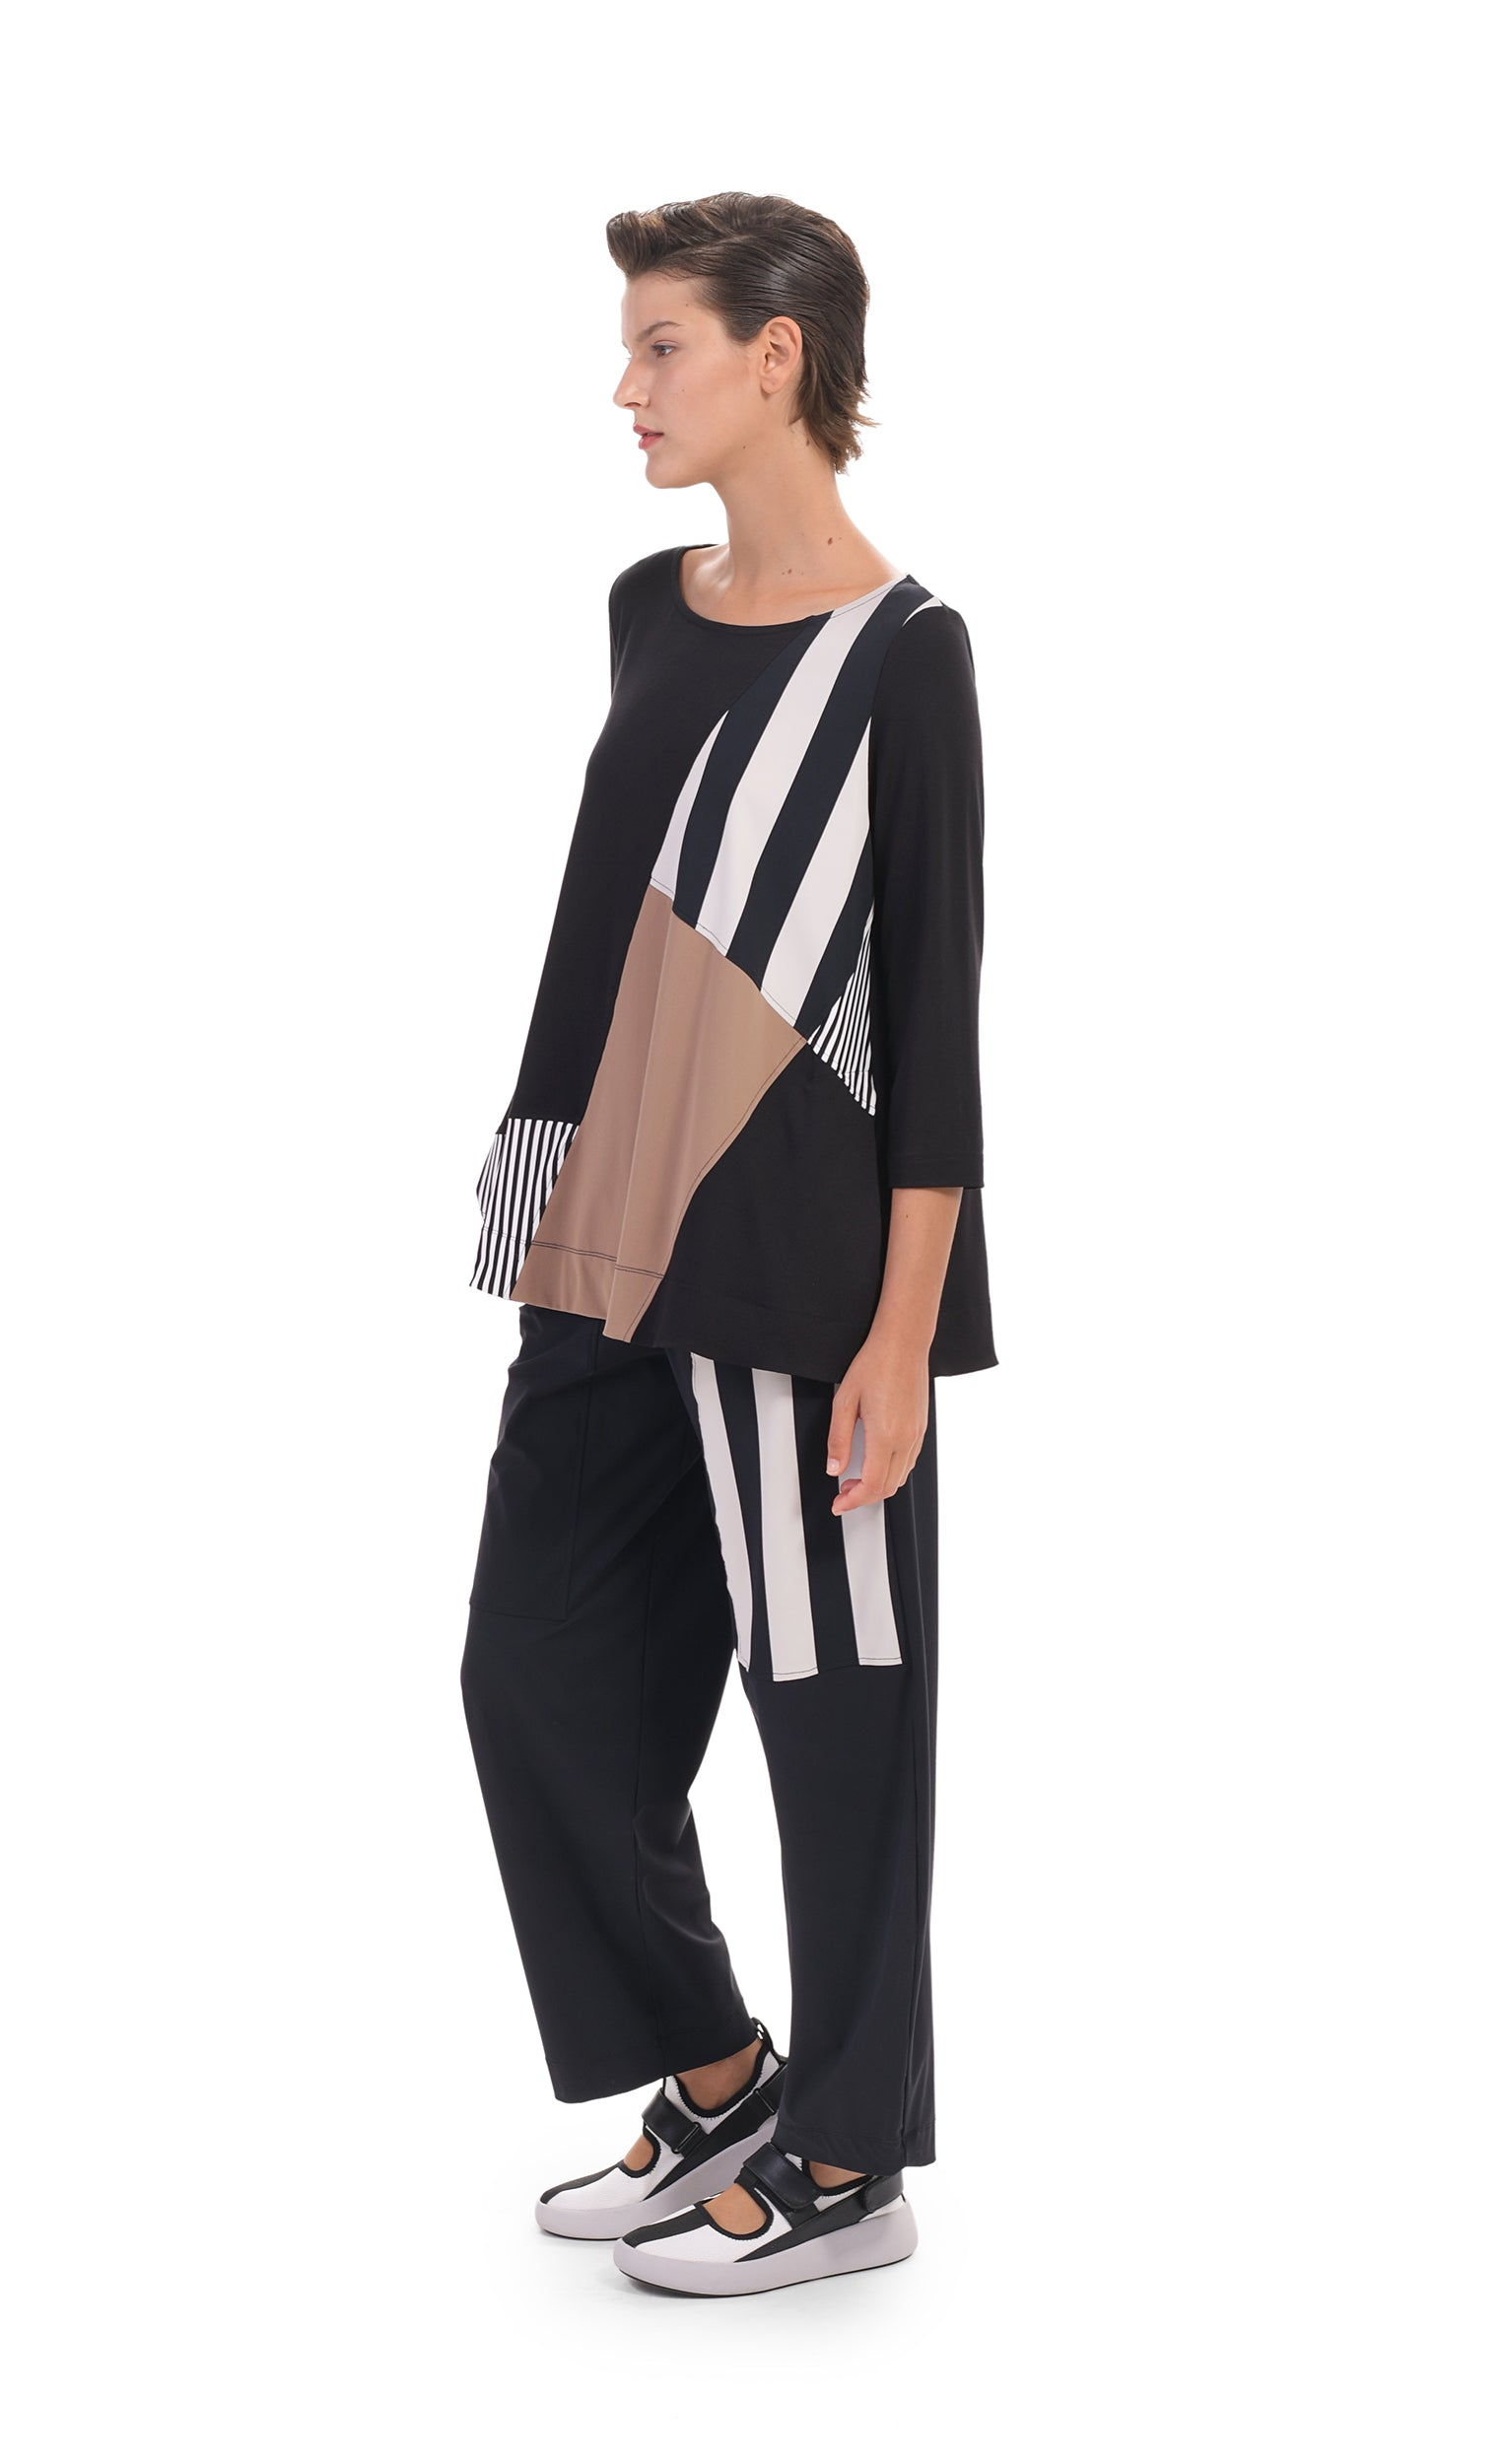 Front, left side full body view of a woman wearing the alembika tekbika mixed print top. This top has 3/4 length sleeves and blocking of black and white stripes and mocha colored patches. On the bottom she is wearing a wide leg pant with a black and white striped patch.